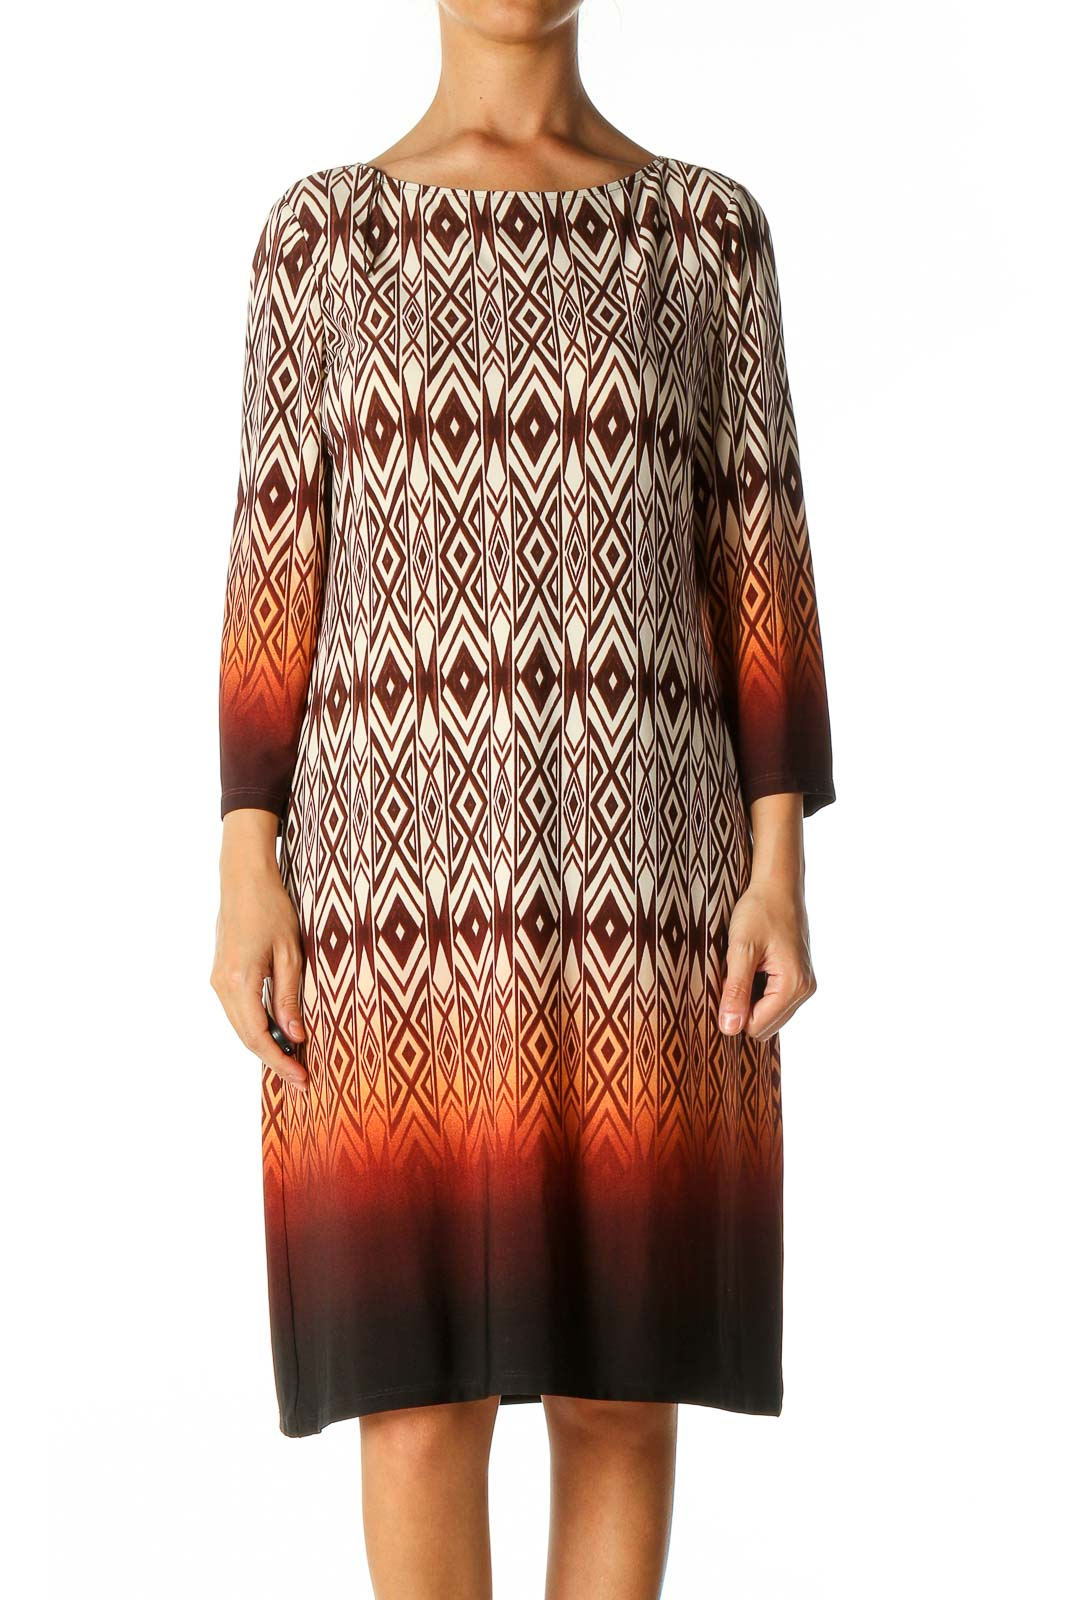 Brown Graphic Print Bohemian Shift Dress Front